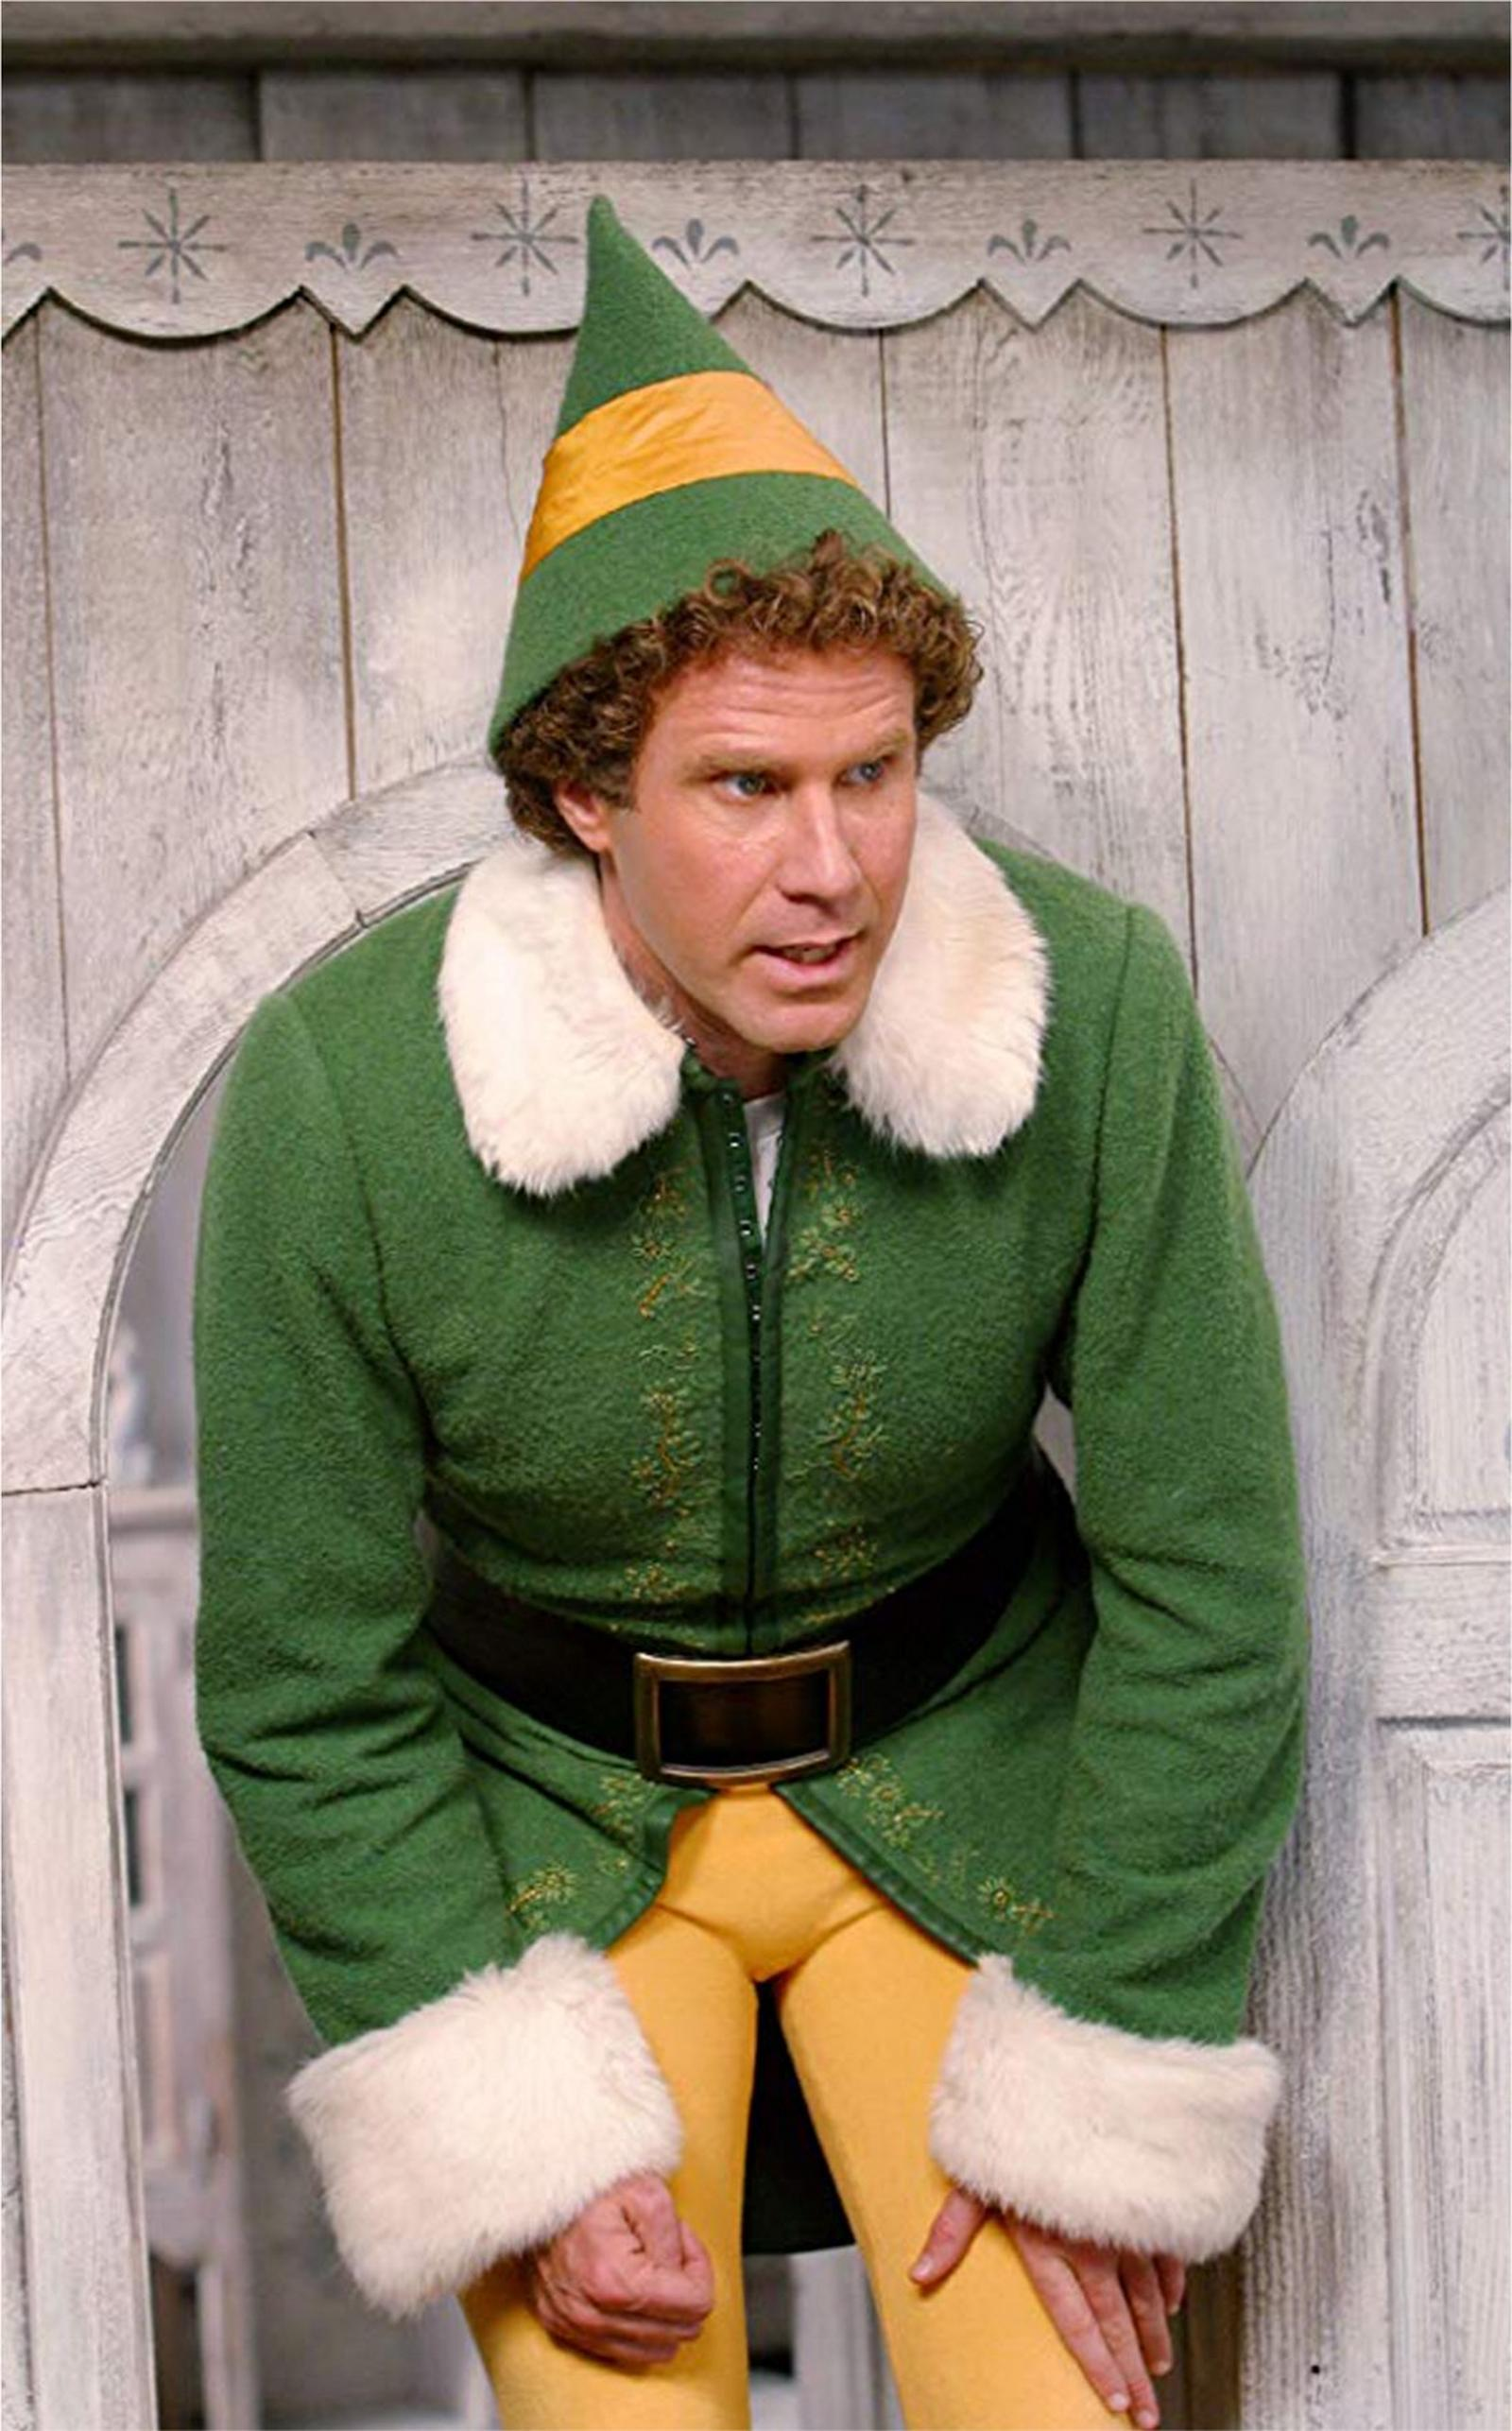 will ferrel in the movie, the elf, wearing an elf costume